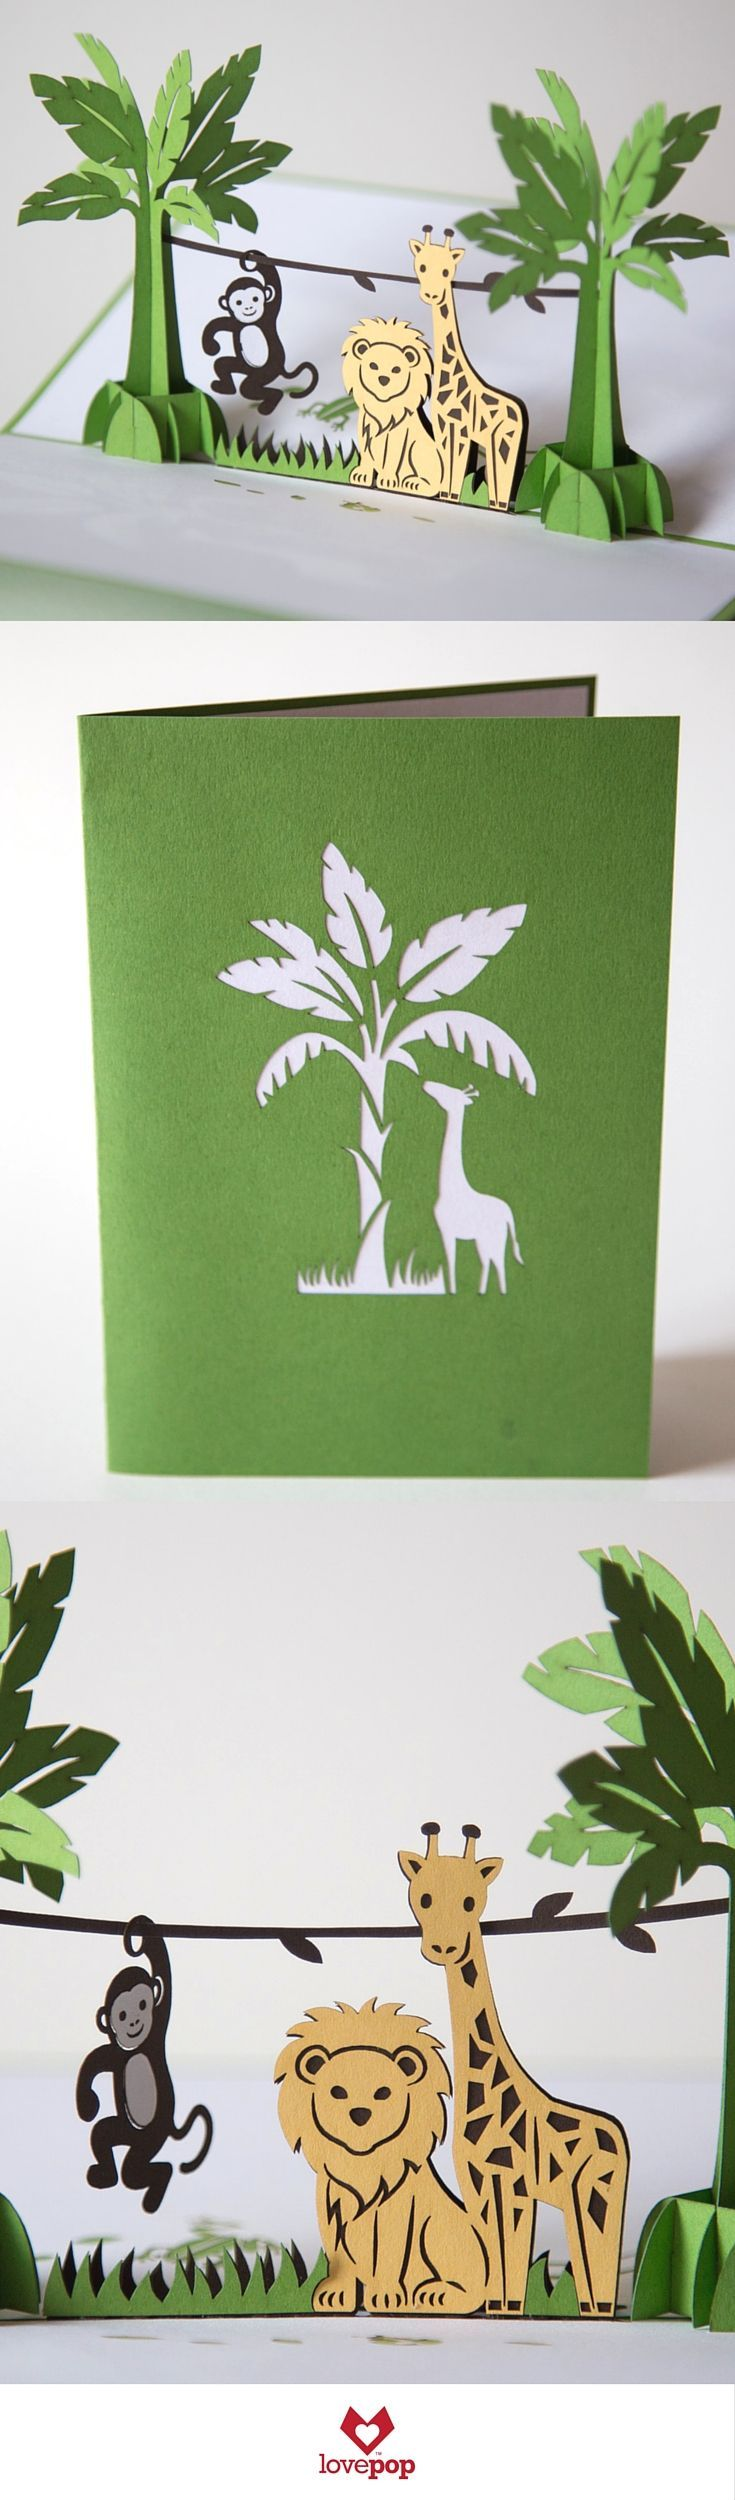 Light up the party with this cute set of paper art safari animals! Perfect as a birthday pop up card for a kid or as an invite to a baby shower.